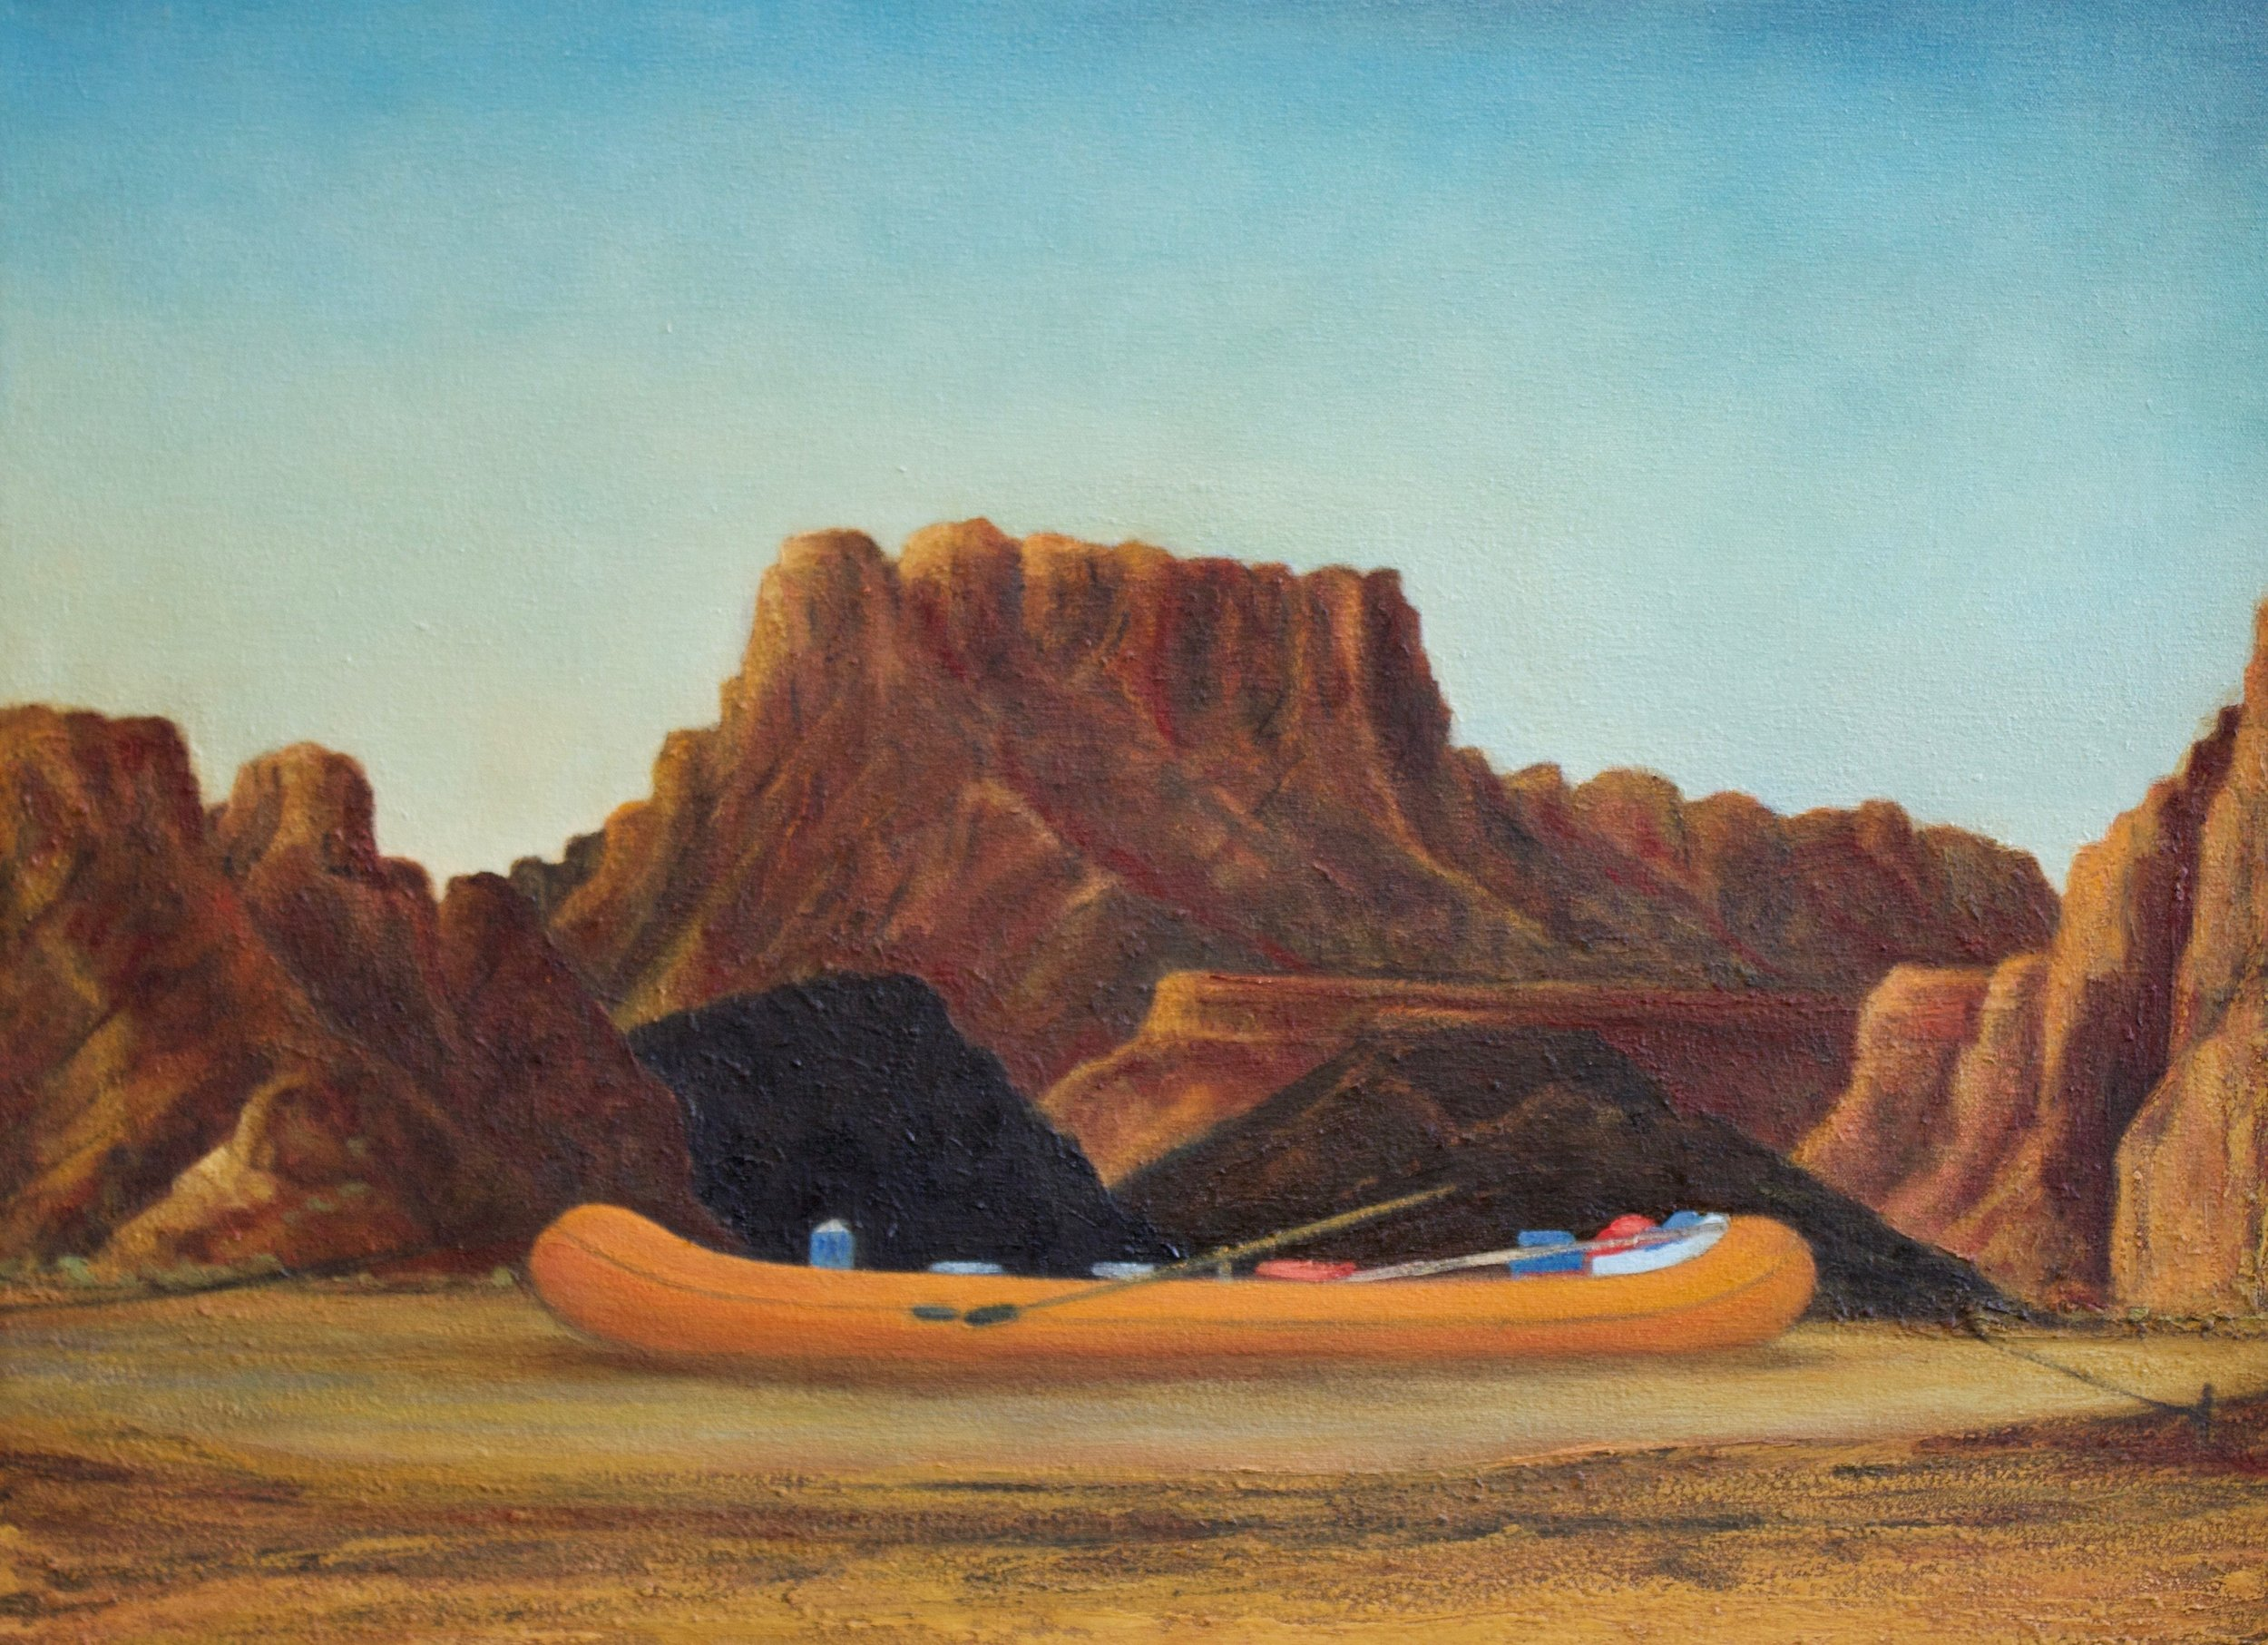 """""""   The City of Green River and John Wesley Powell River History Museum will Open a New River Trail   """"  by Castle Country Radio, March 11, 2019. (Painting by Patrick Kikut)"""